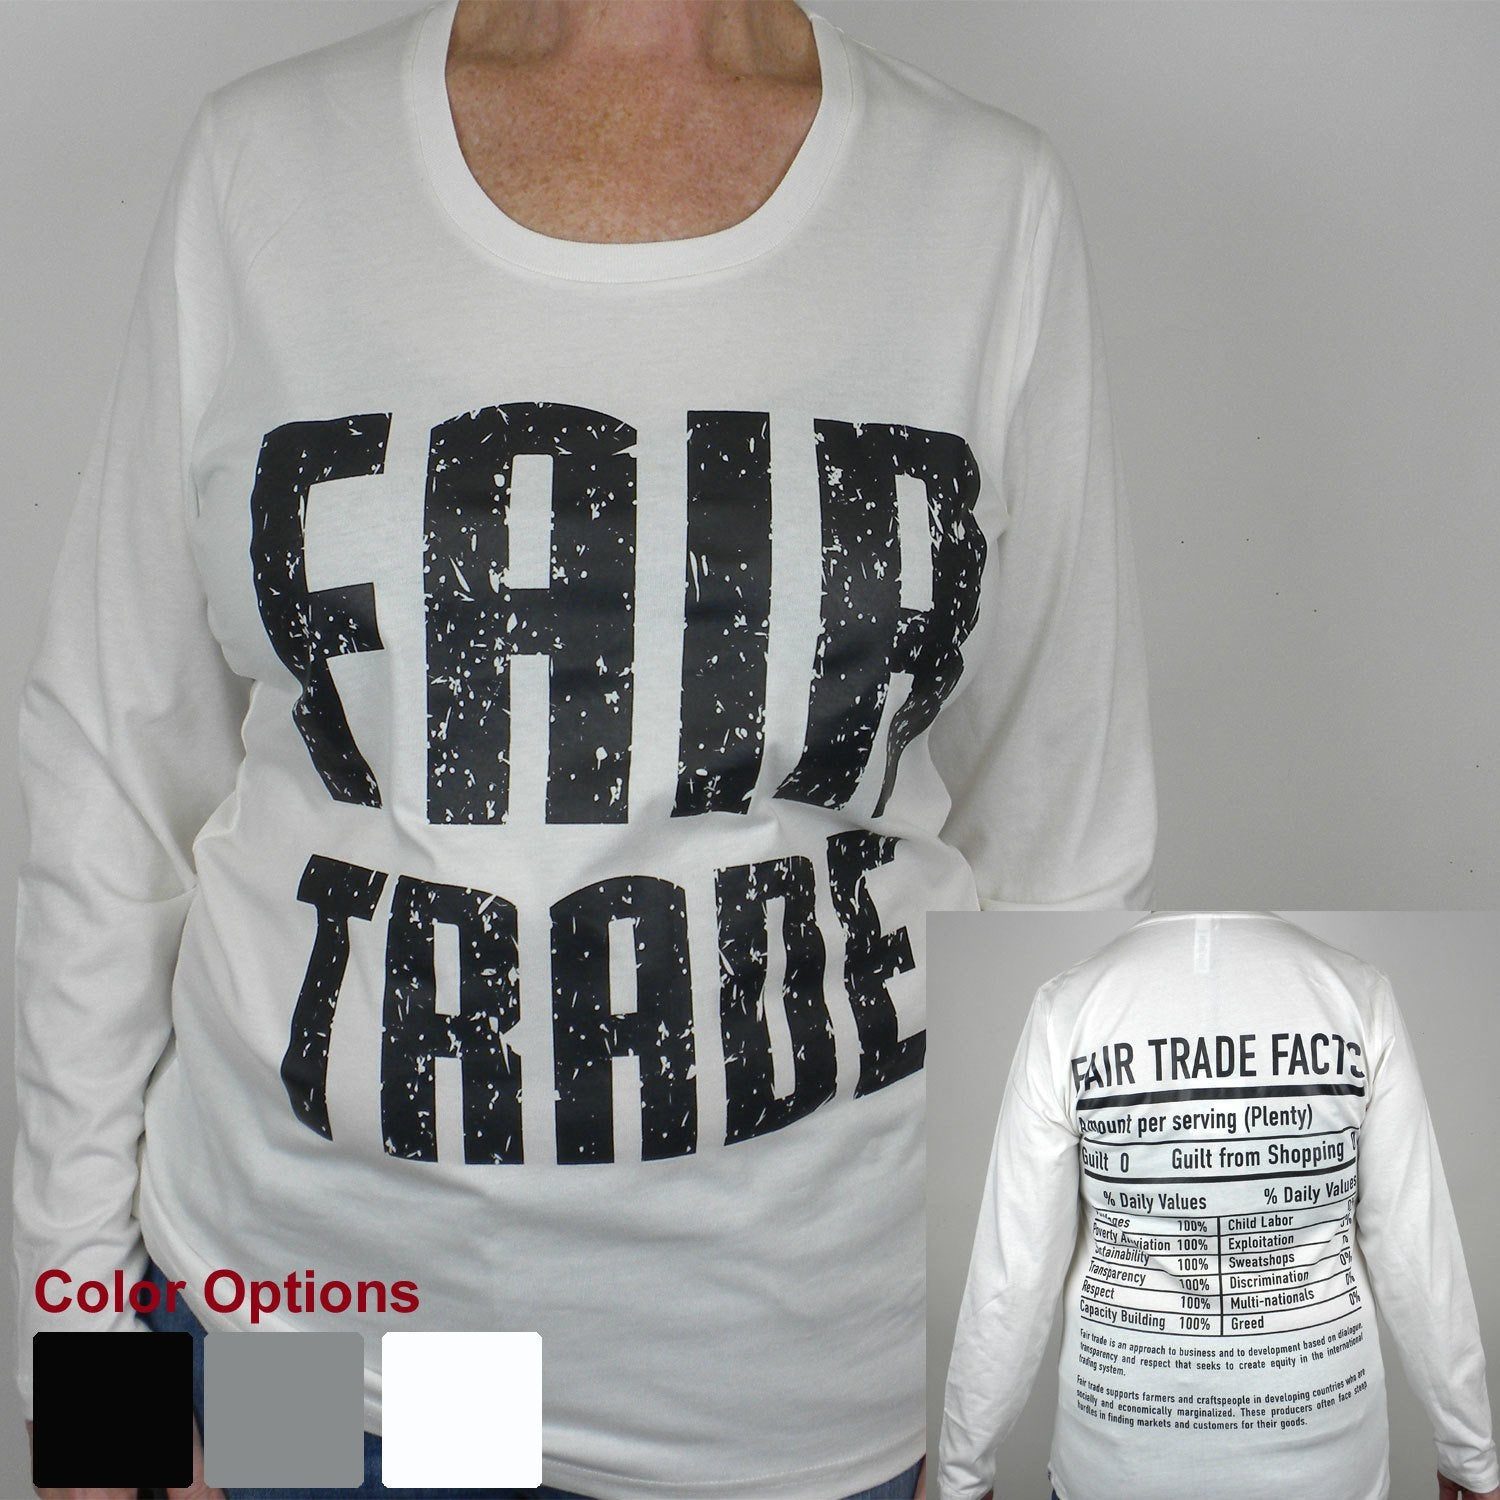 White Tee Shirt Long Sleeve FT Front - FT Facts on Back - Medium